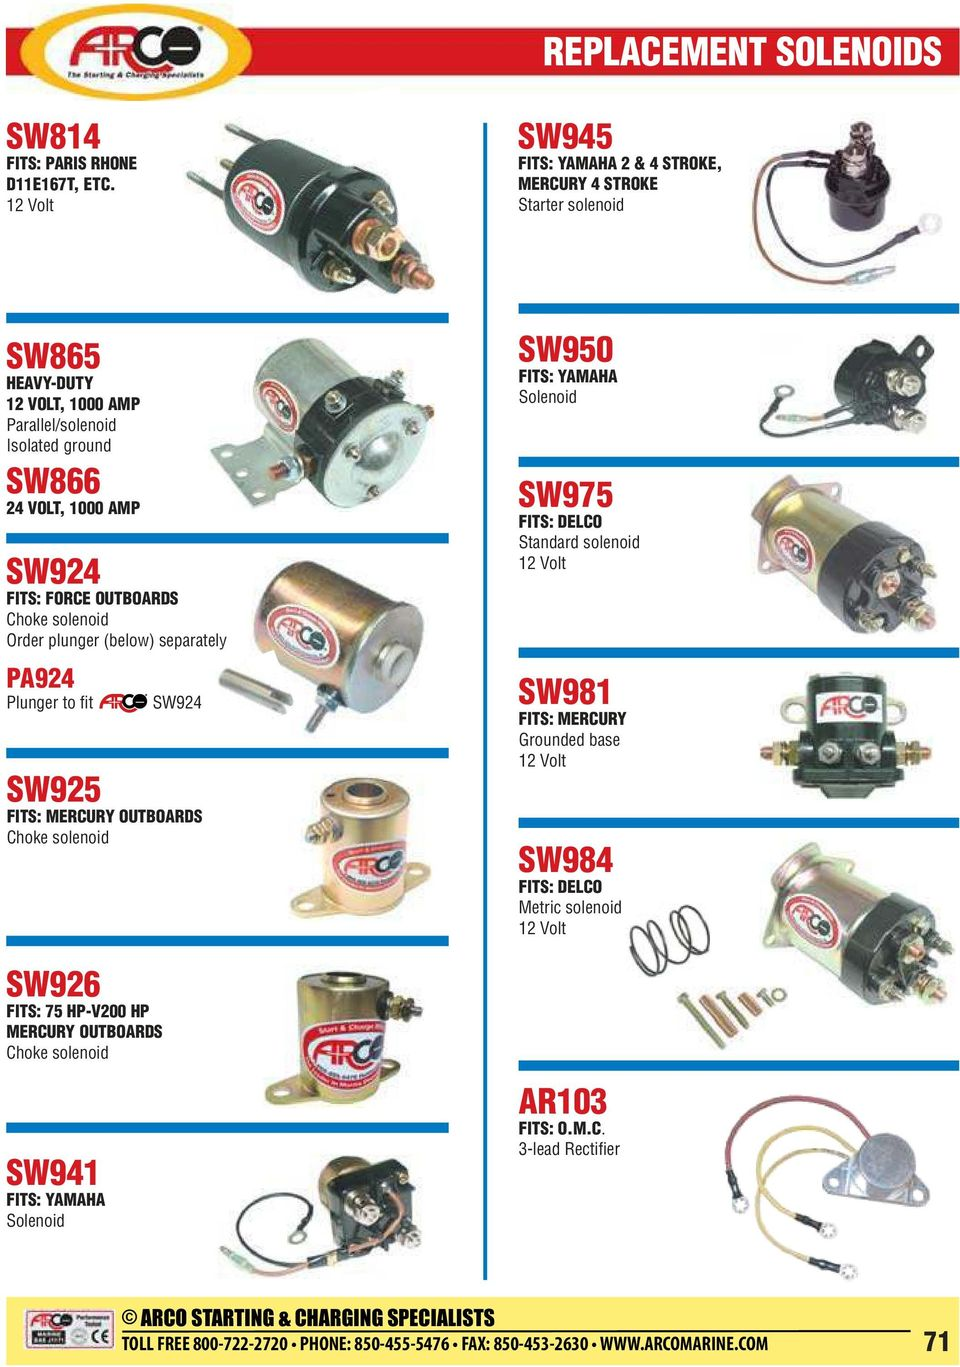 Replacement Solenoids Pdf 75 Hp Force Outboard Diagram Wiring Schematic Choke Solenoid Sw926 Fits V200 Mercury Outboards Sw950